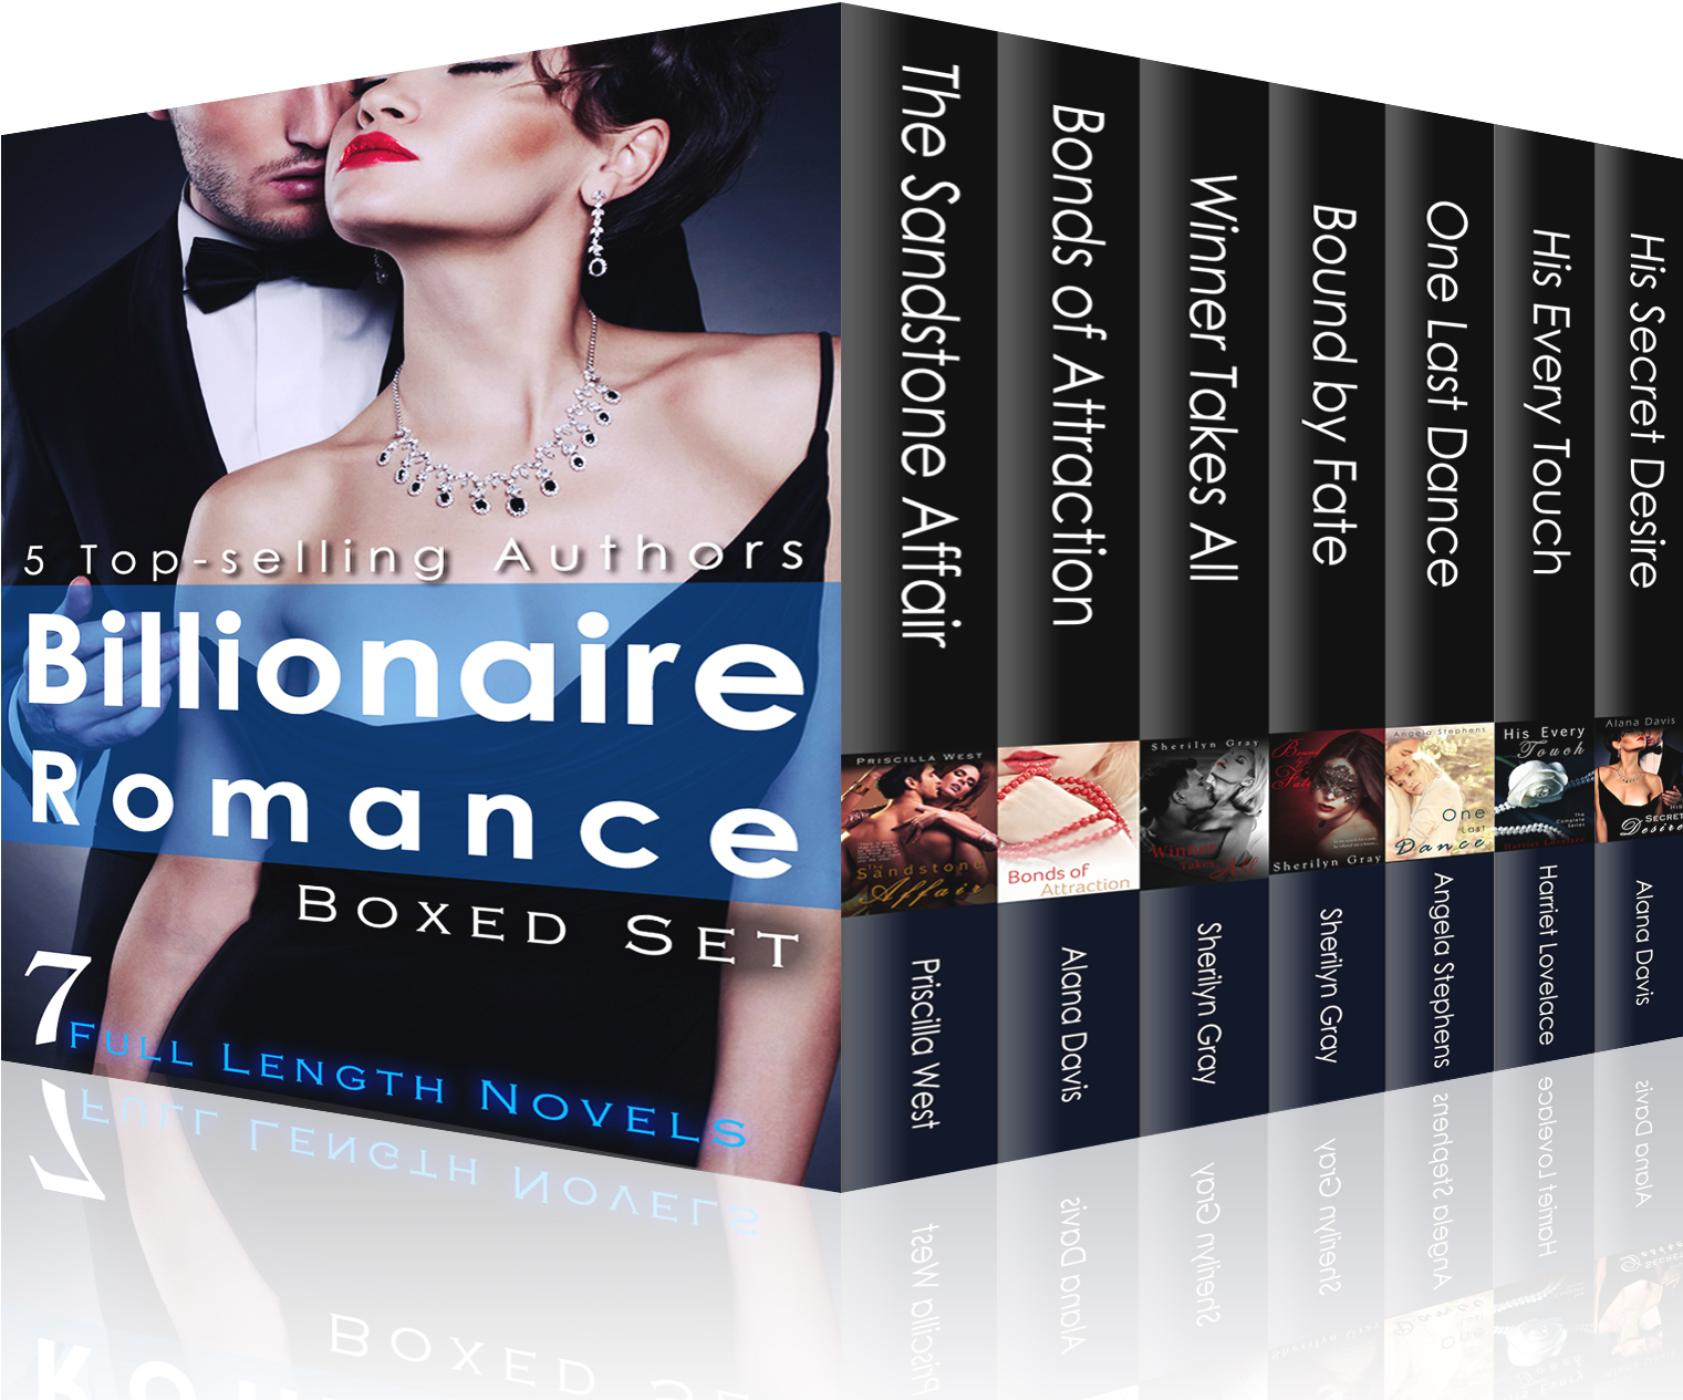 Angela Stephens, Harriet Lovelace, Priscilla West, Sherilyn Gray  Alana Davis - Billionaire Romance Boxed Set: 7 Steamy Full Length Novels